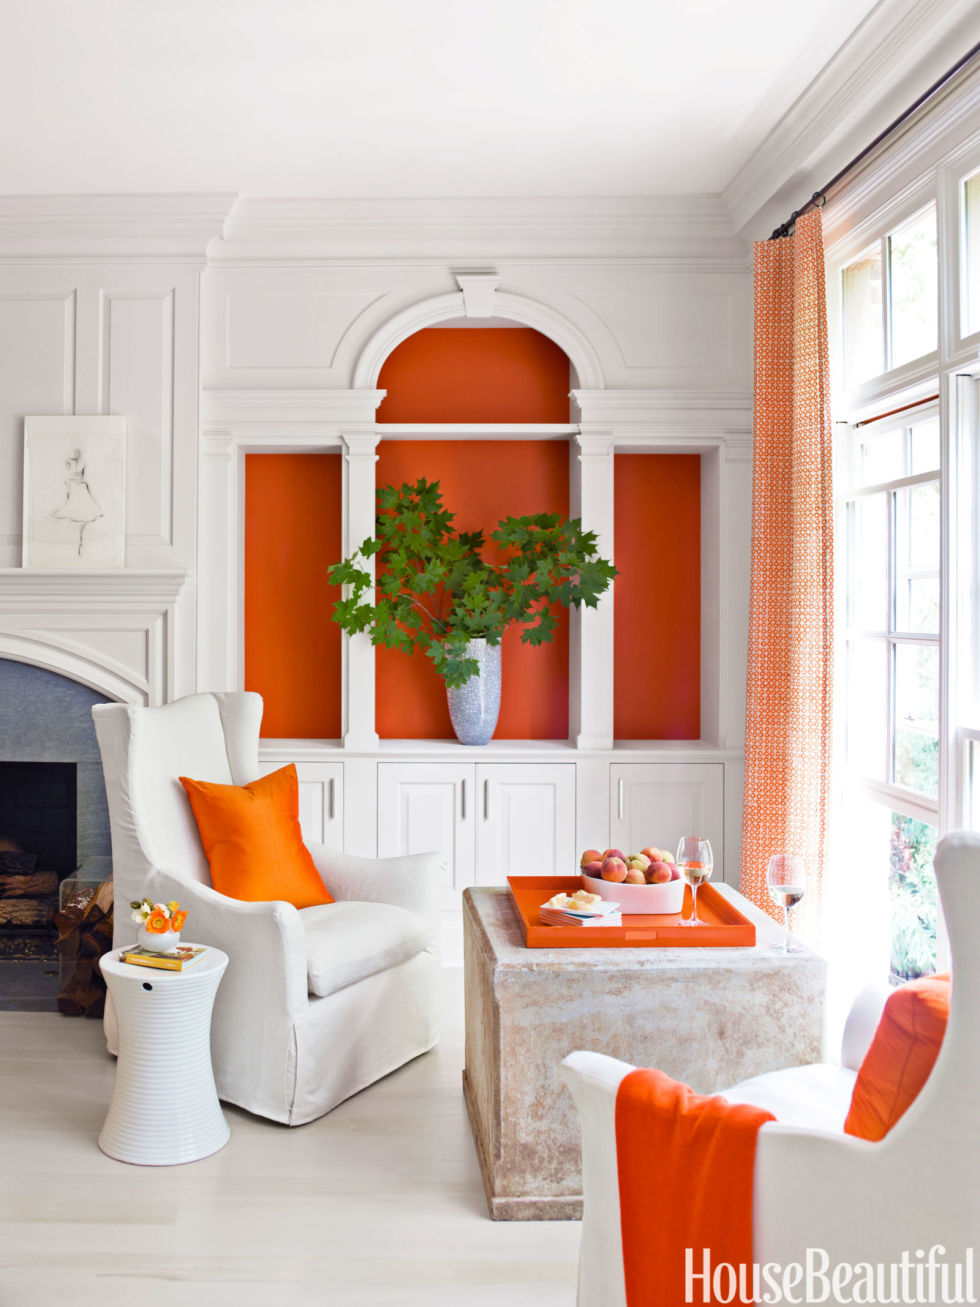 20 easy home decorating ideas - interior decorating and decor tips MJAGLHU